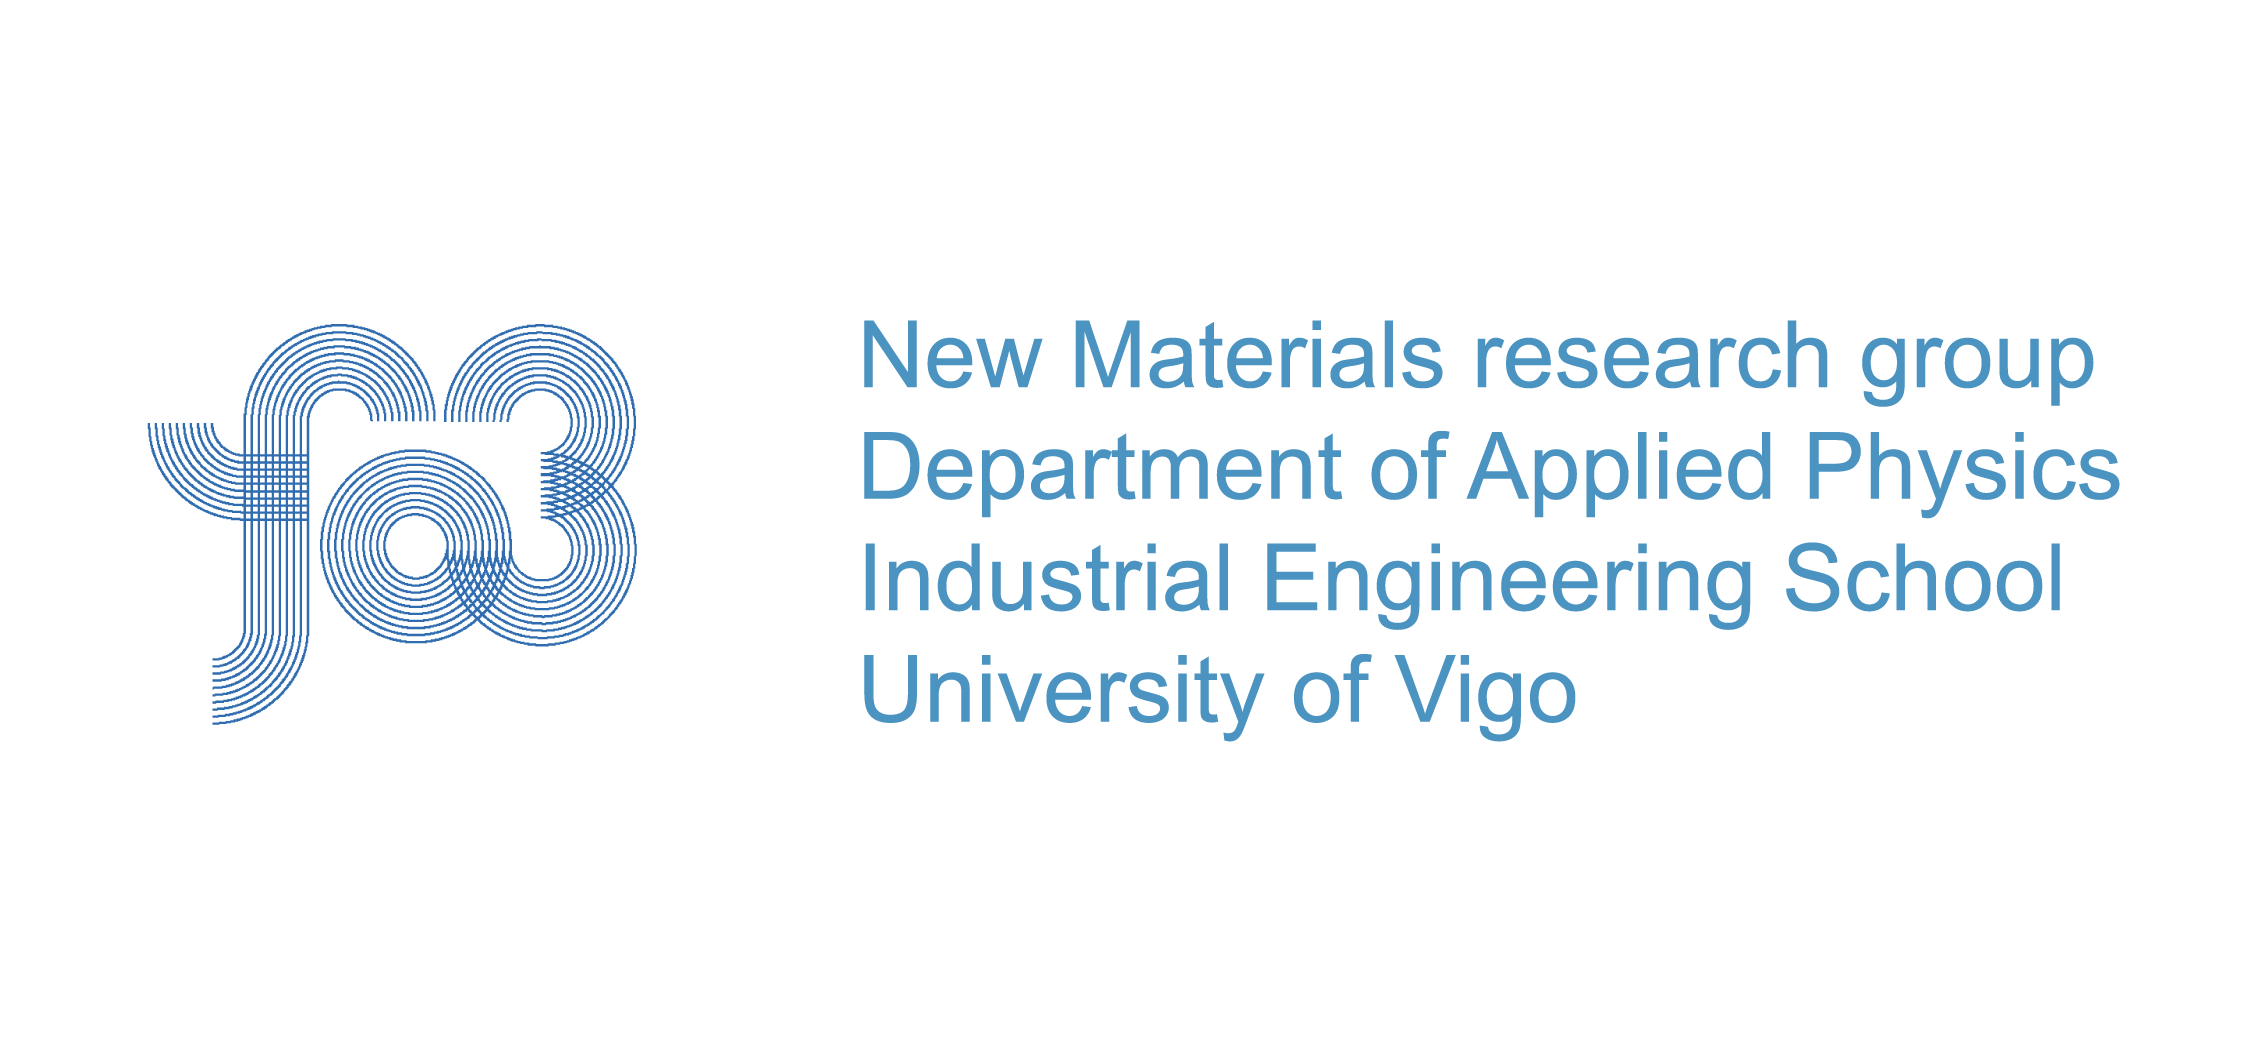 New Materials research group department of applied physics industrial engineering school university of vigo logo